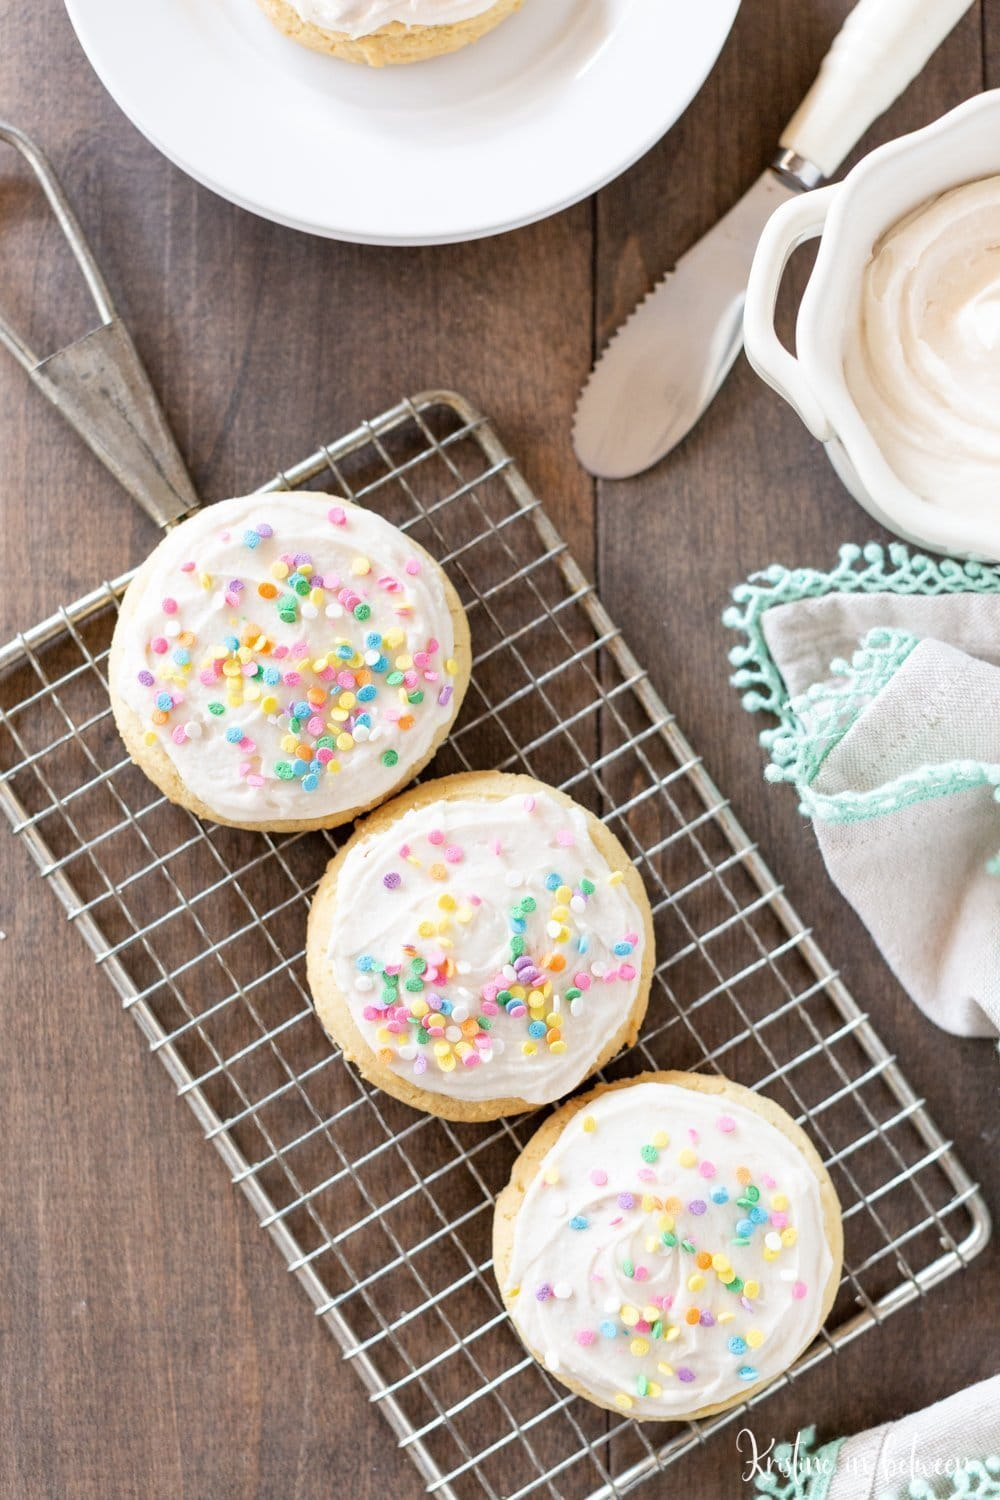 This soft sugar cookie recipe is a must-bake for the holidays! The cookies are light and fluffy, making them perfect for buttercream frosting and sprinkles!